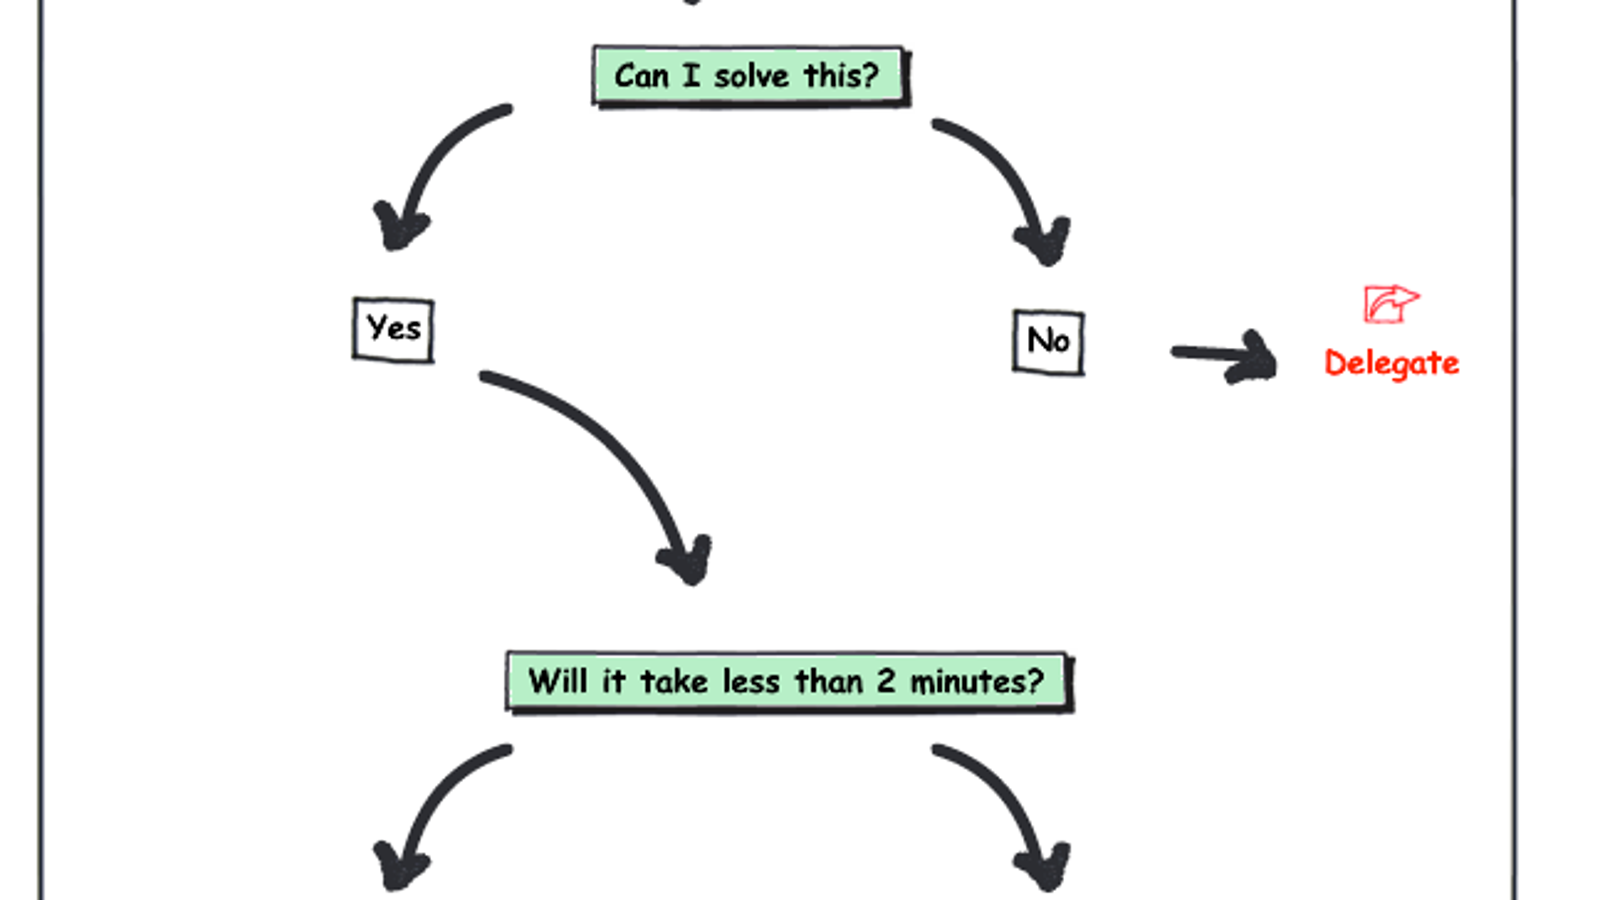 The Focused Email Flowchart Helps You Power Through Your Inbox